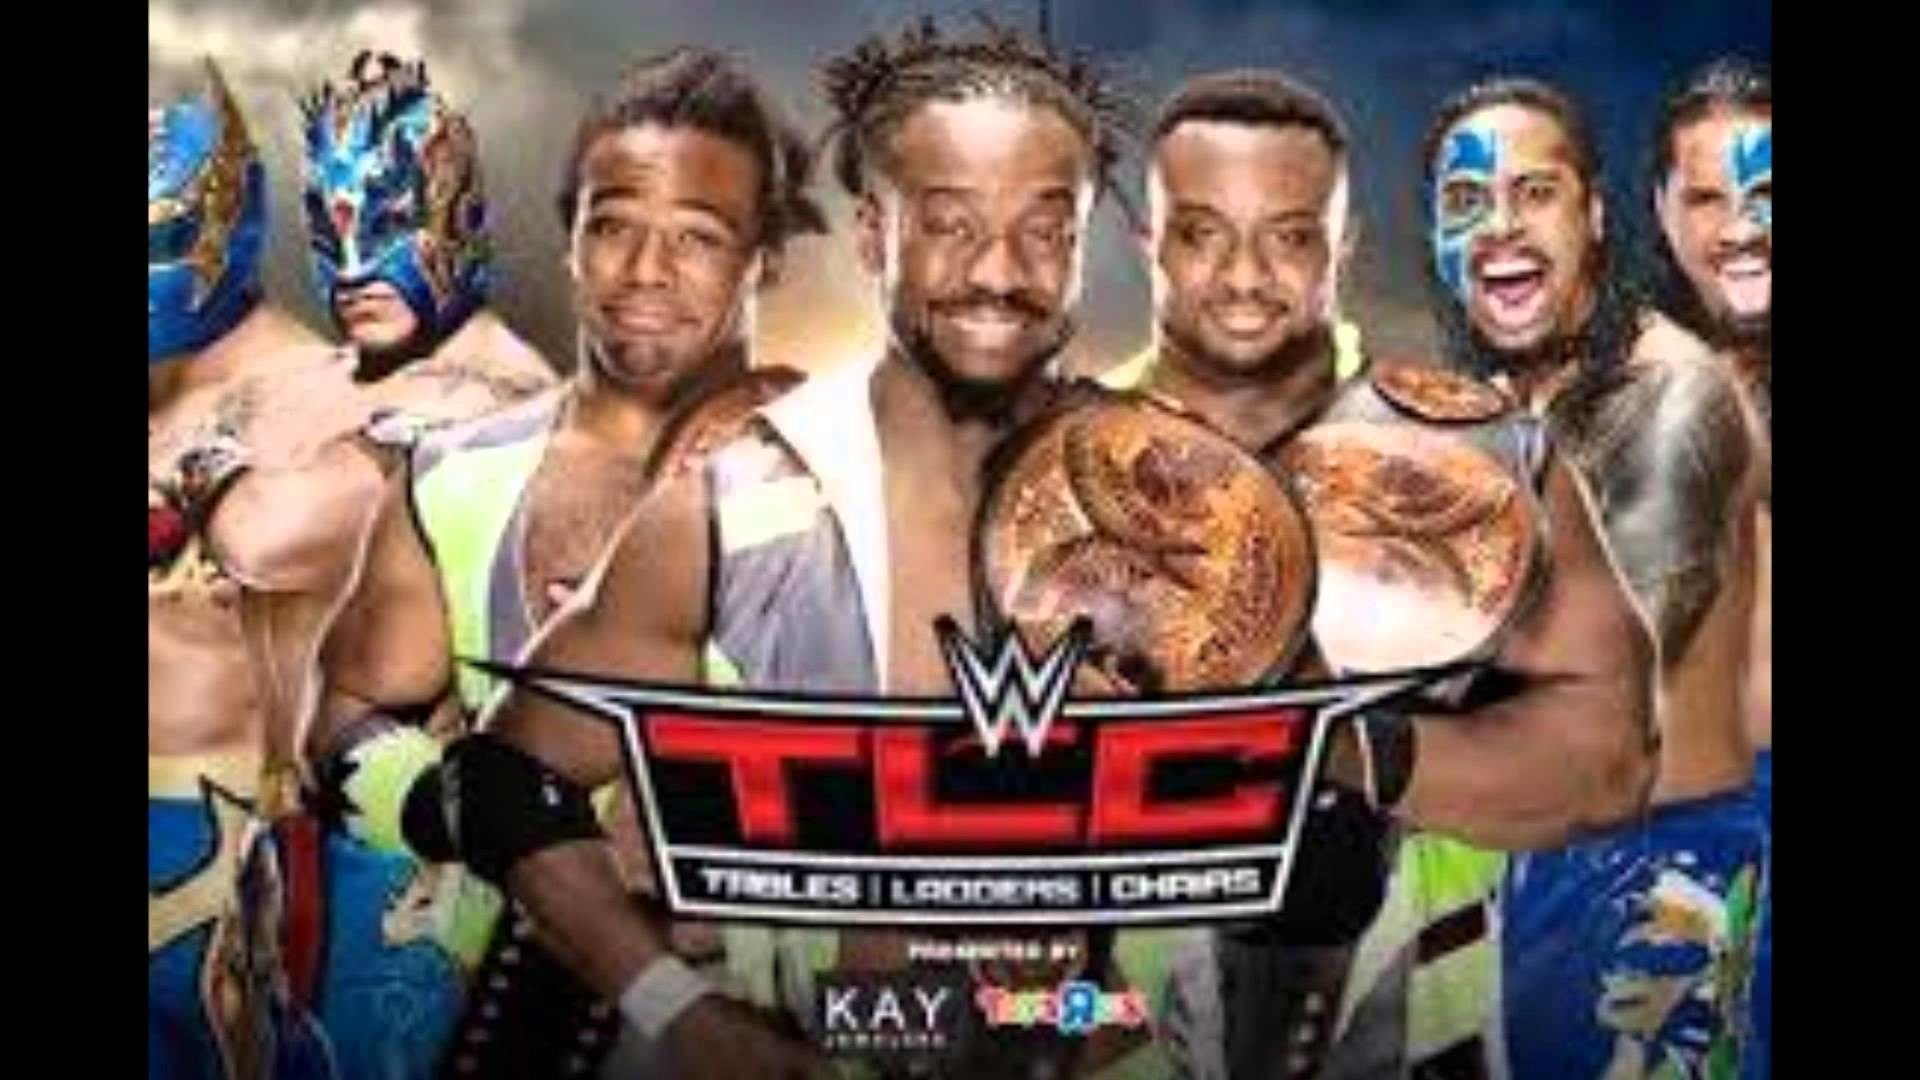 WWE TLC 2015 The Lucha Dragons vs The Uso's vs The New Day for the WWE Tag  Team Championships